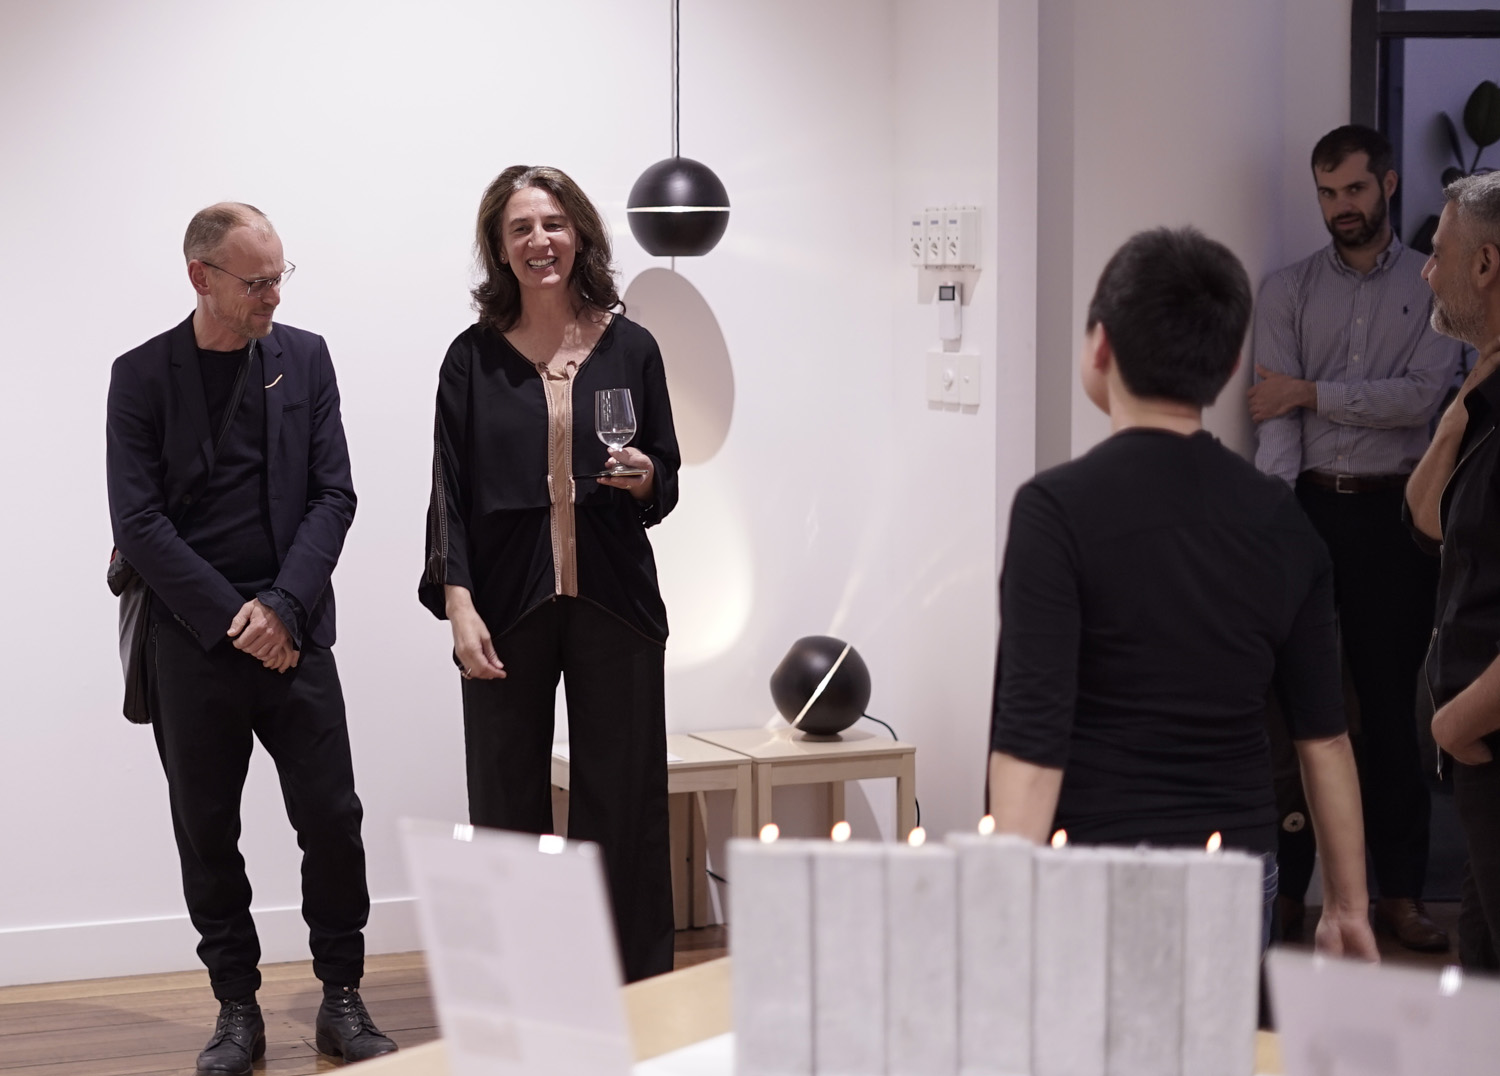 Erna Walsh CEO of KFive + Kinnarp Australia kindly provide the showroom space for the exhibition.